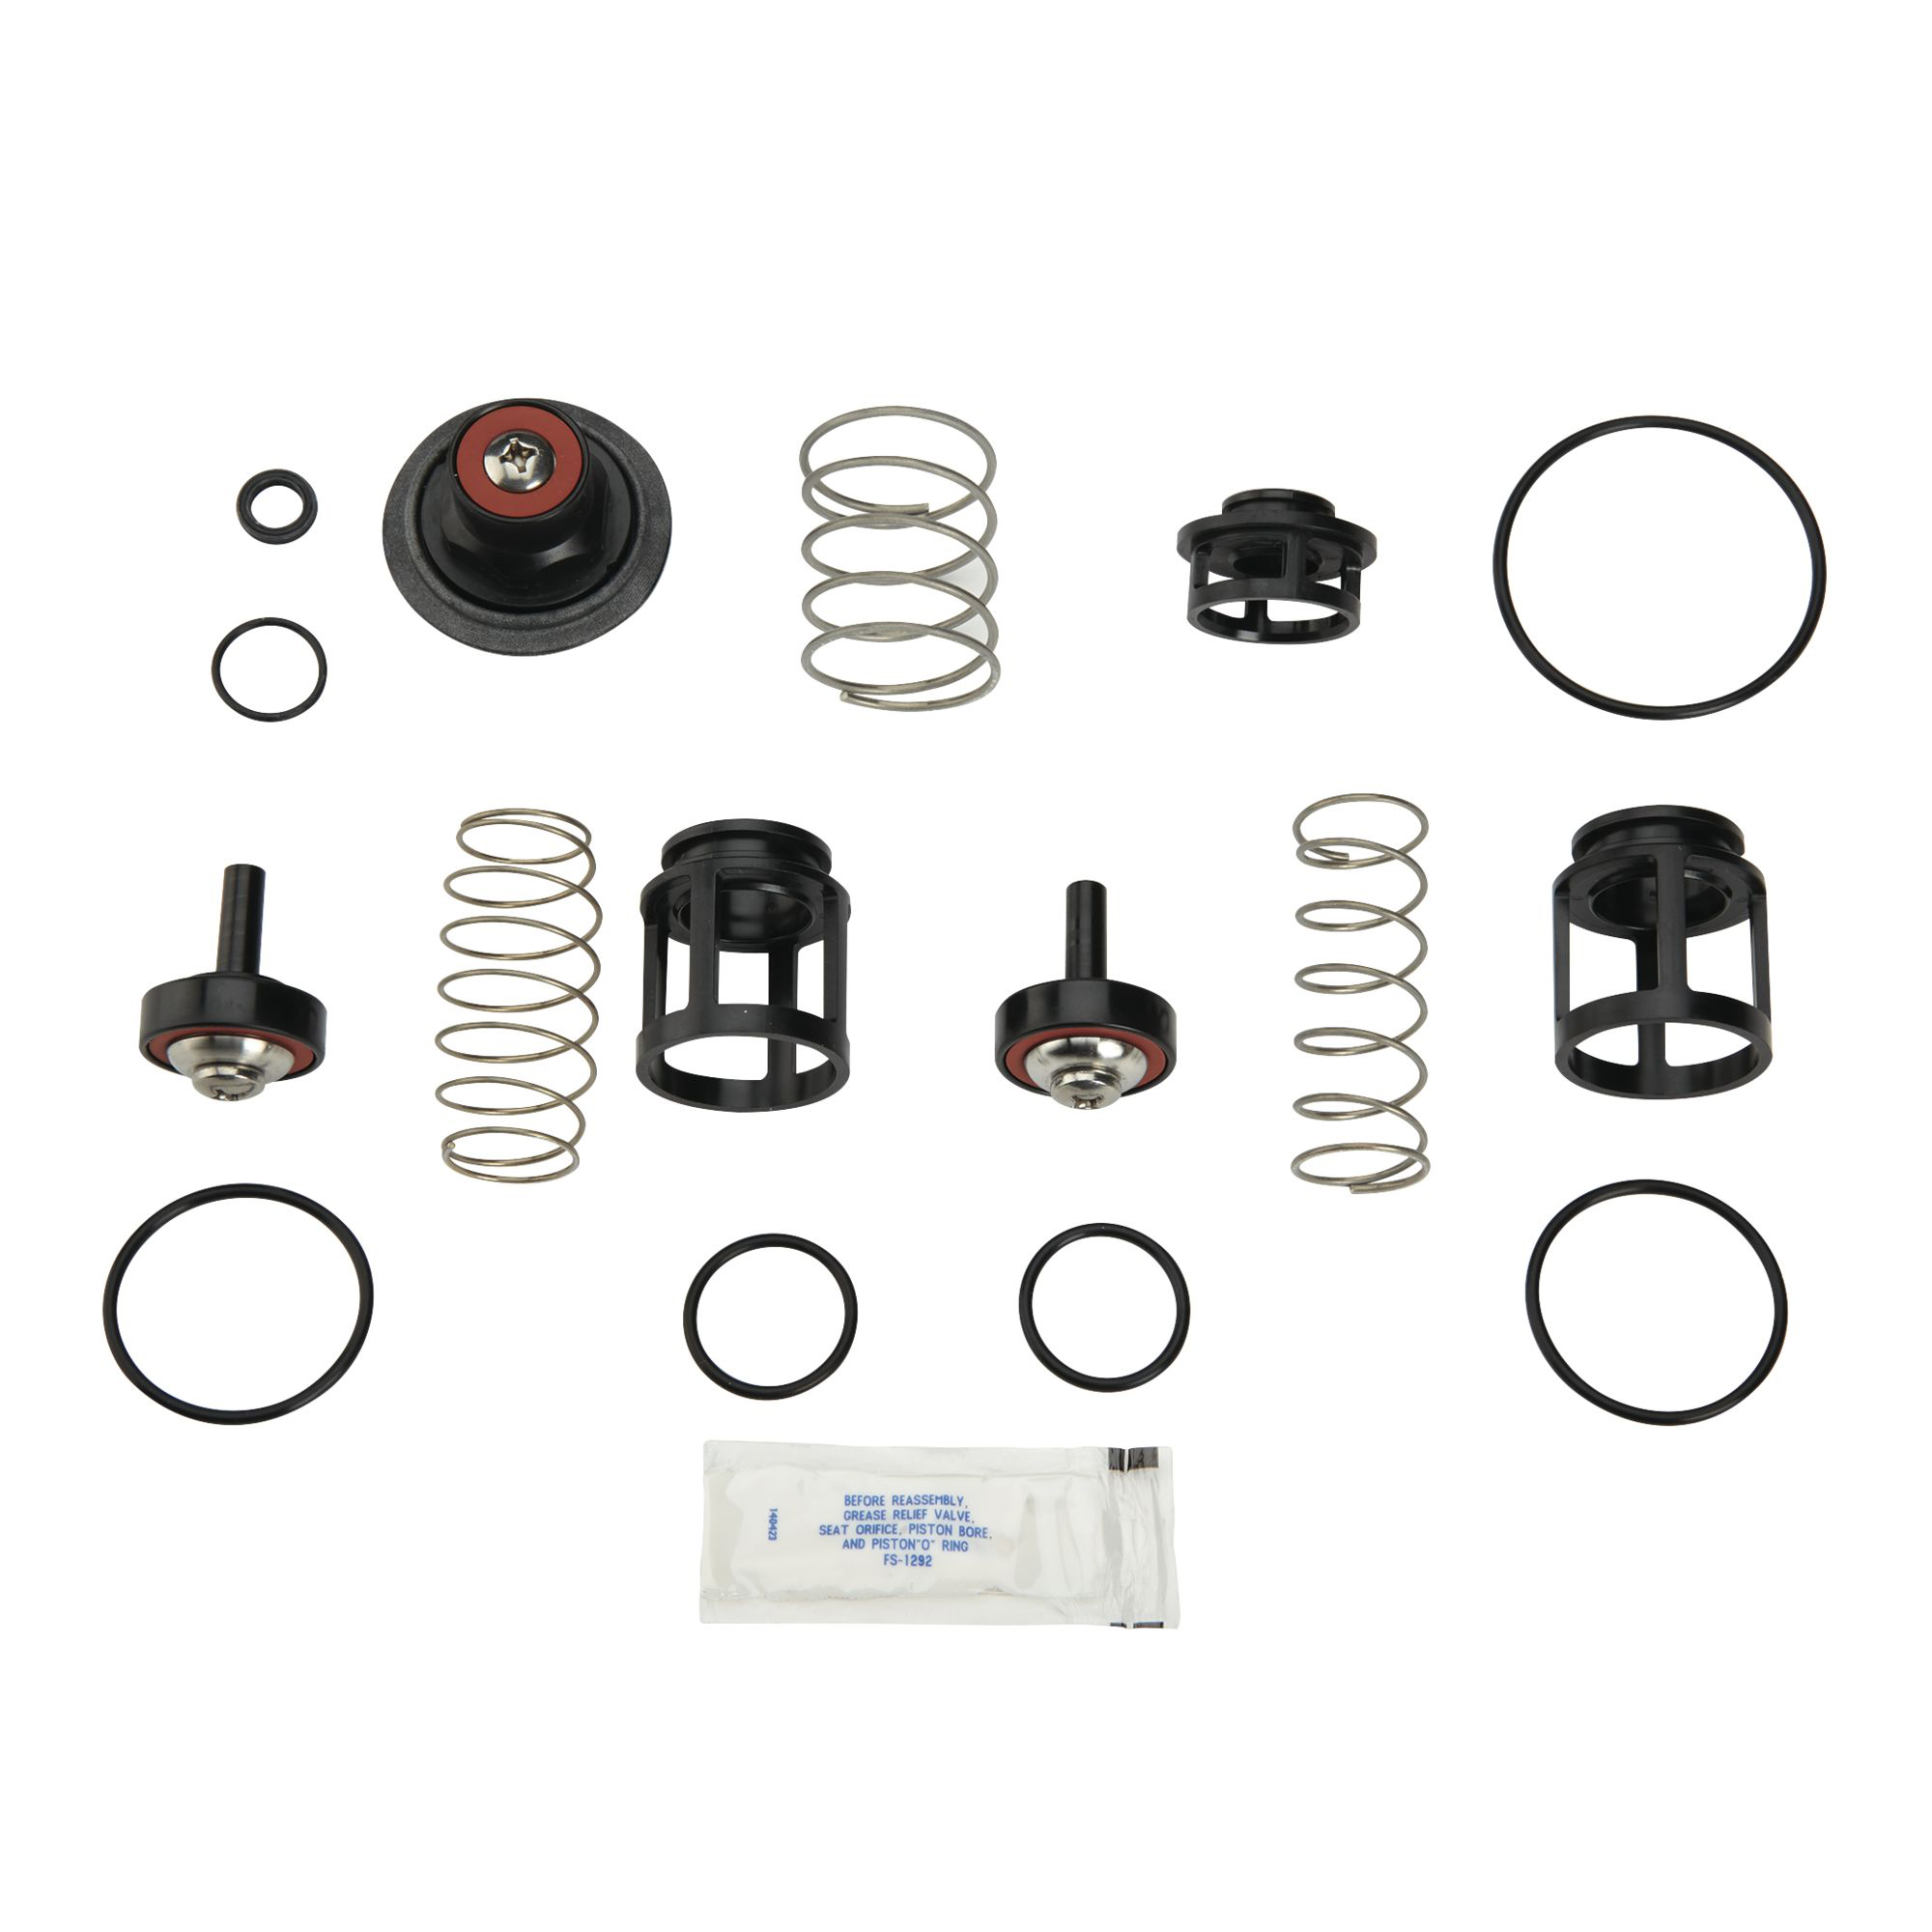 WATTS® 0888168 RK 919-T Total Repair Kit, For Use With: Model 919/LF919 Reduced Pressure Zone Assembly, Domestic